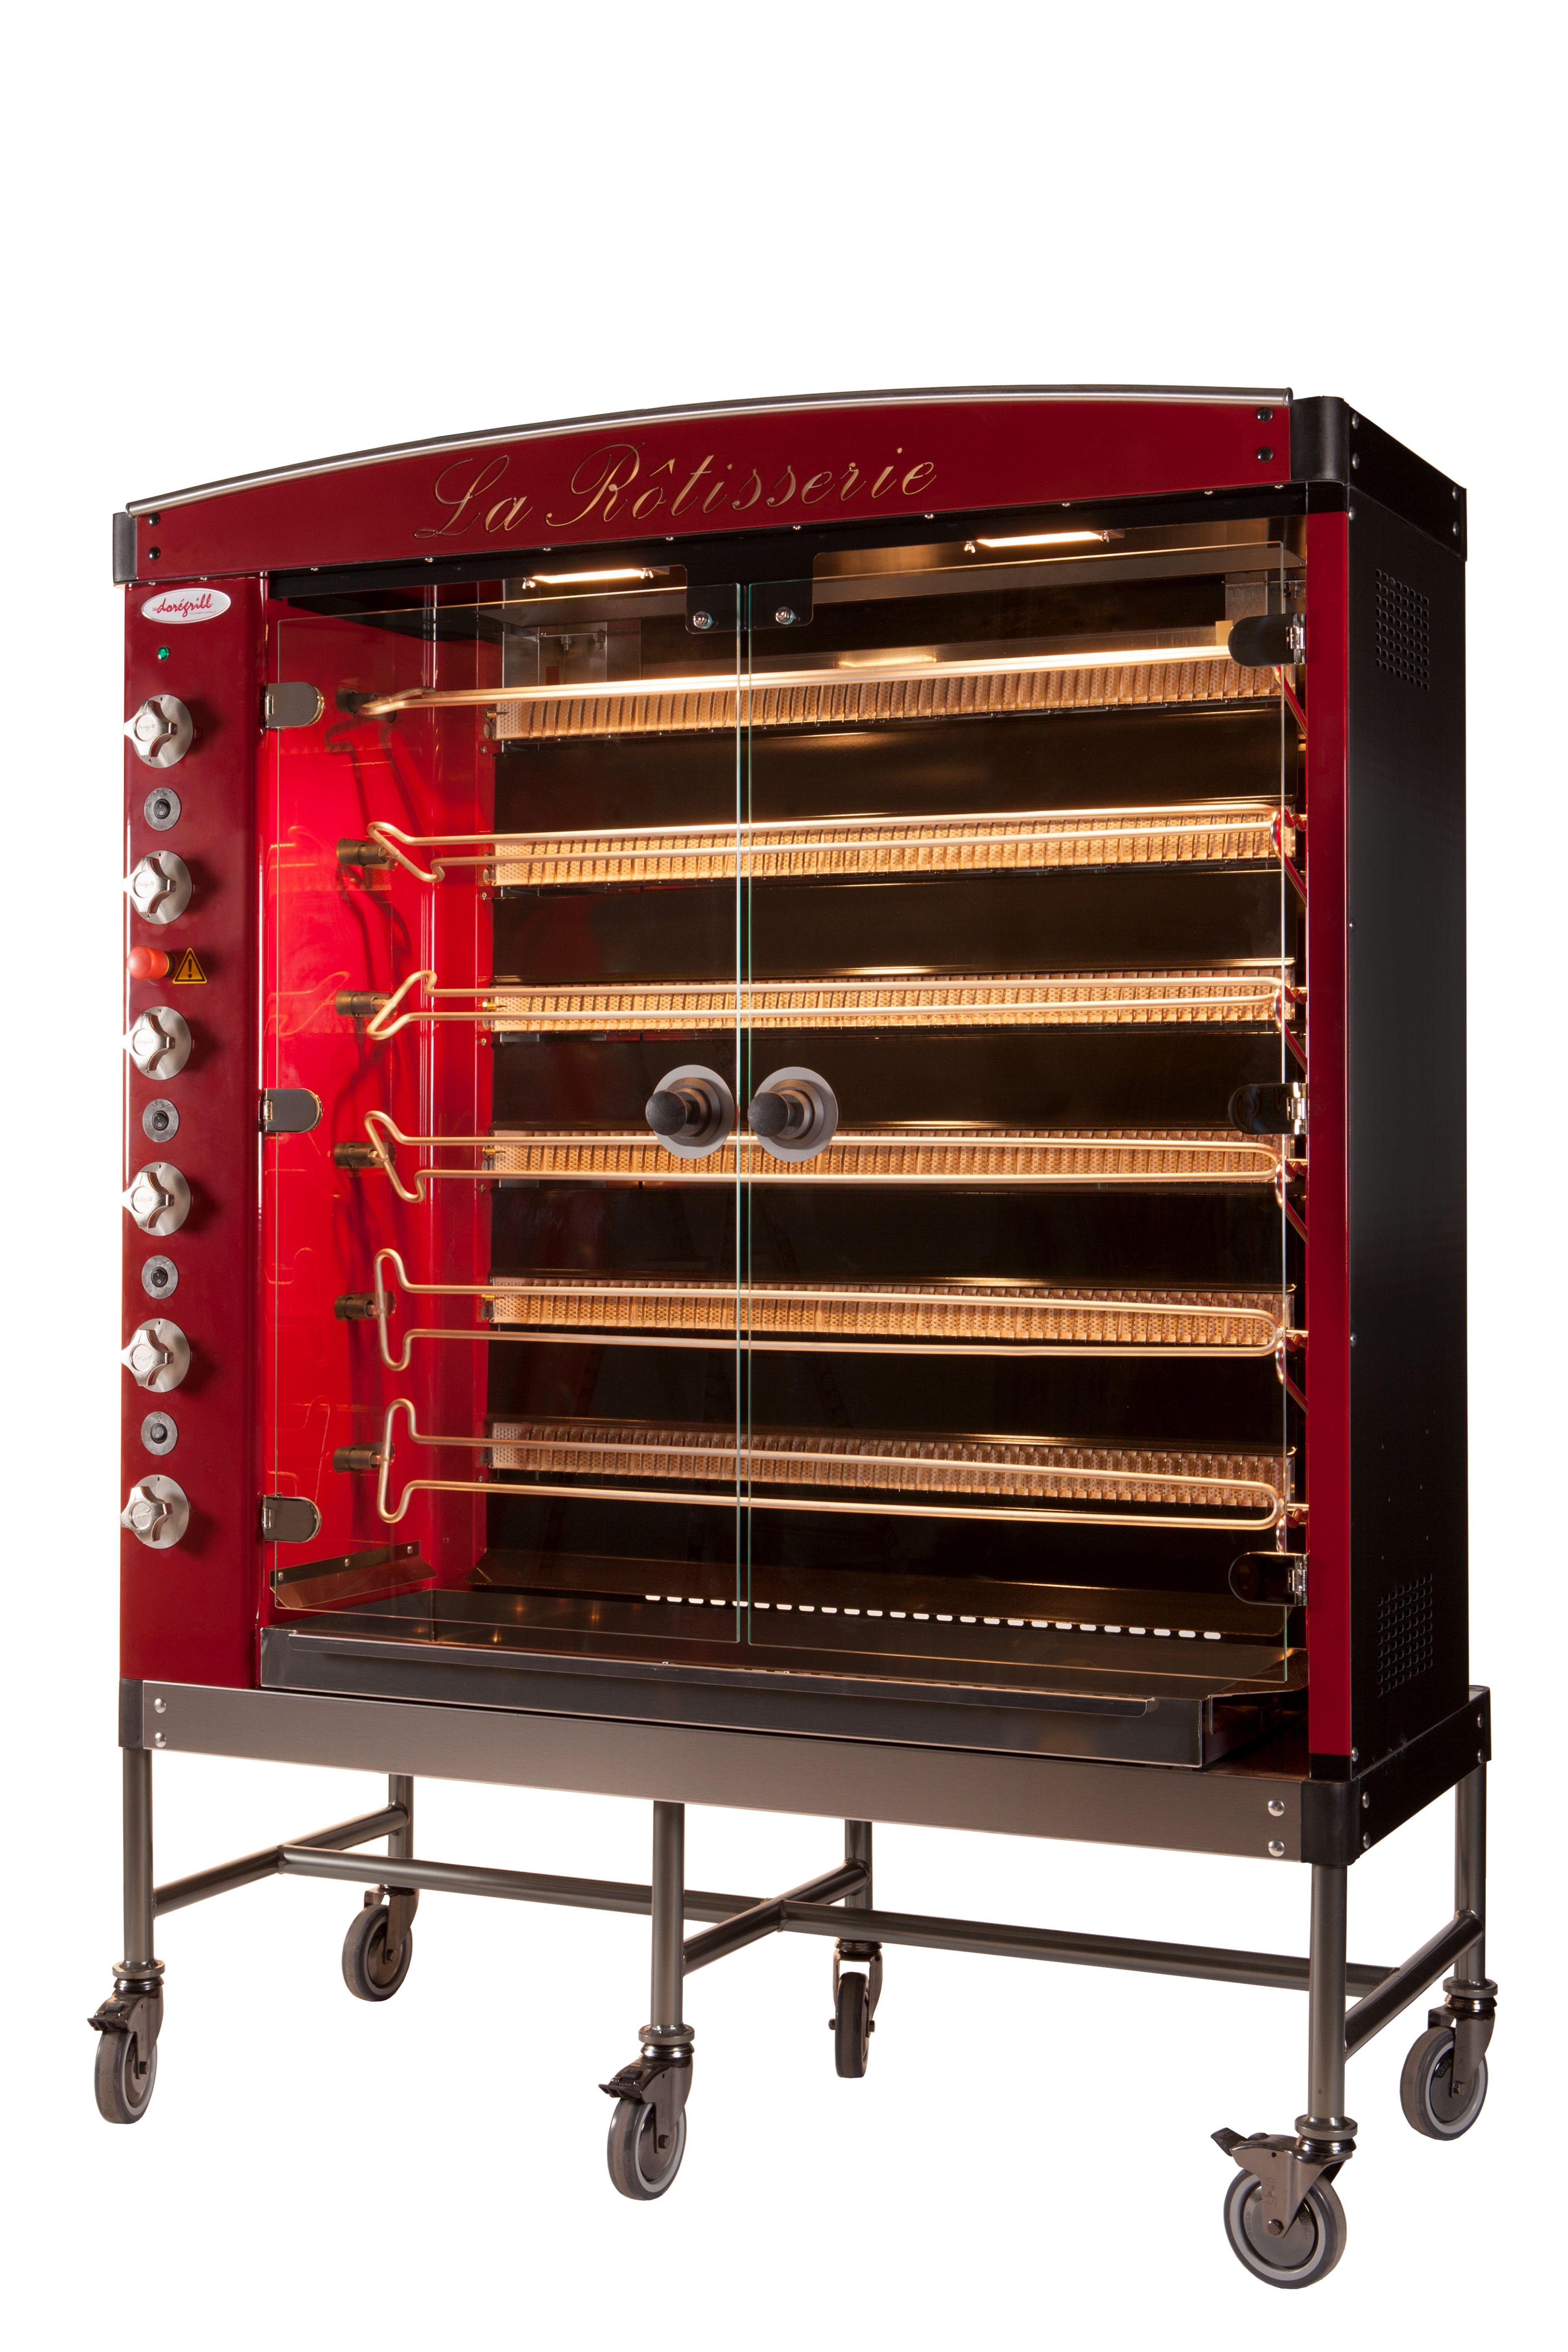 Doregrill MAG6-G Traditional Gas Rotisserie